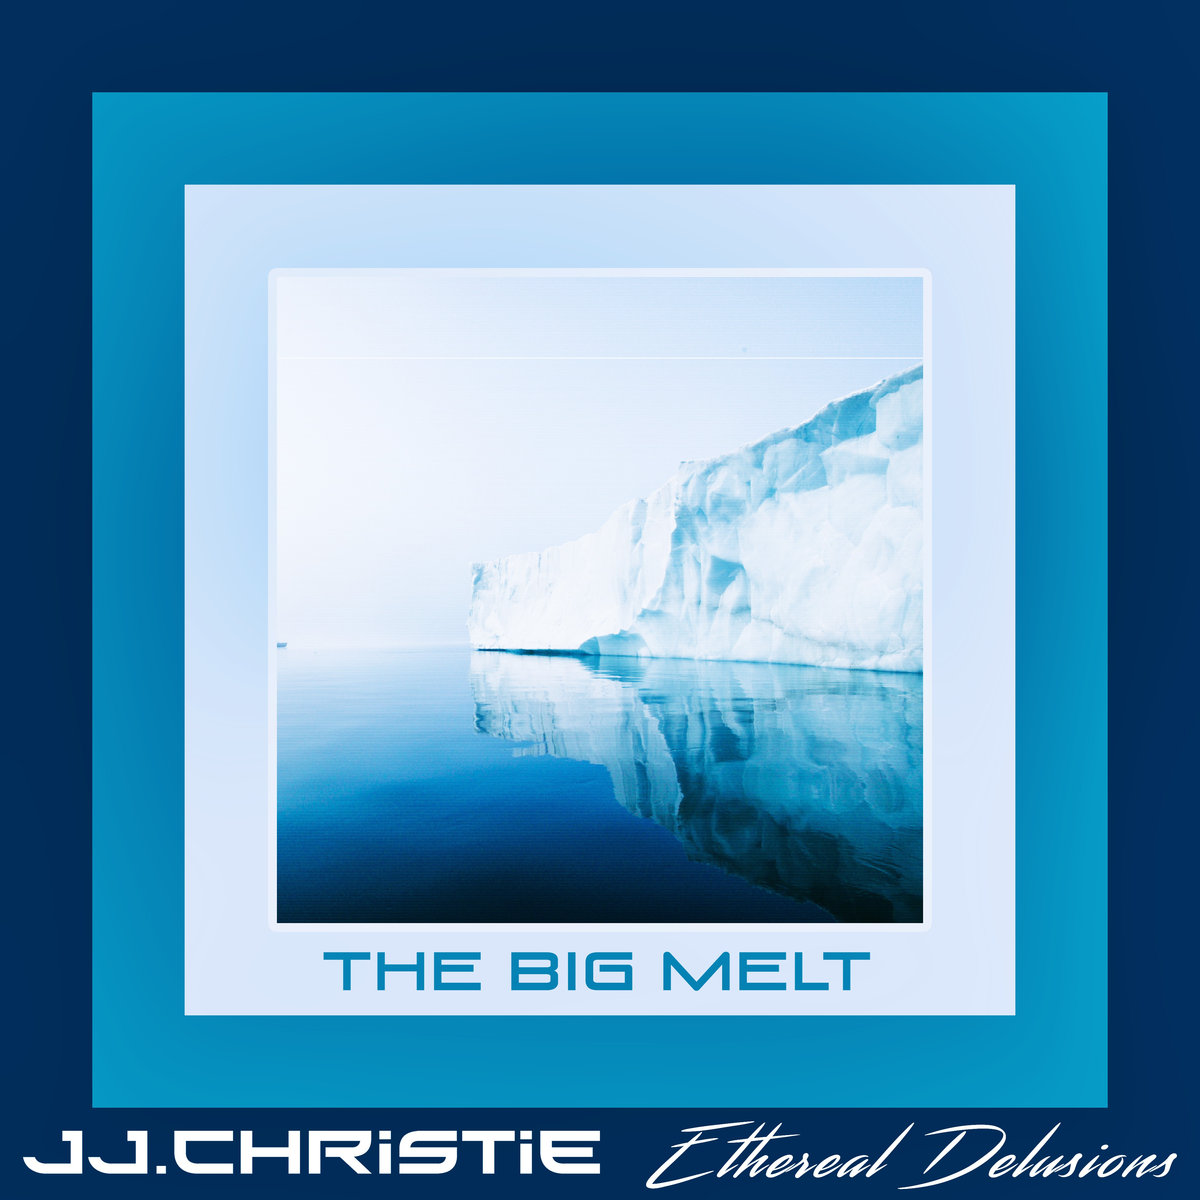 JJ.Christie and Ethereal DelusionsThe Big Melt-JJ.Christie and Ethereal Delusions-Art